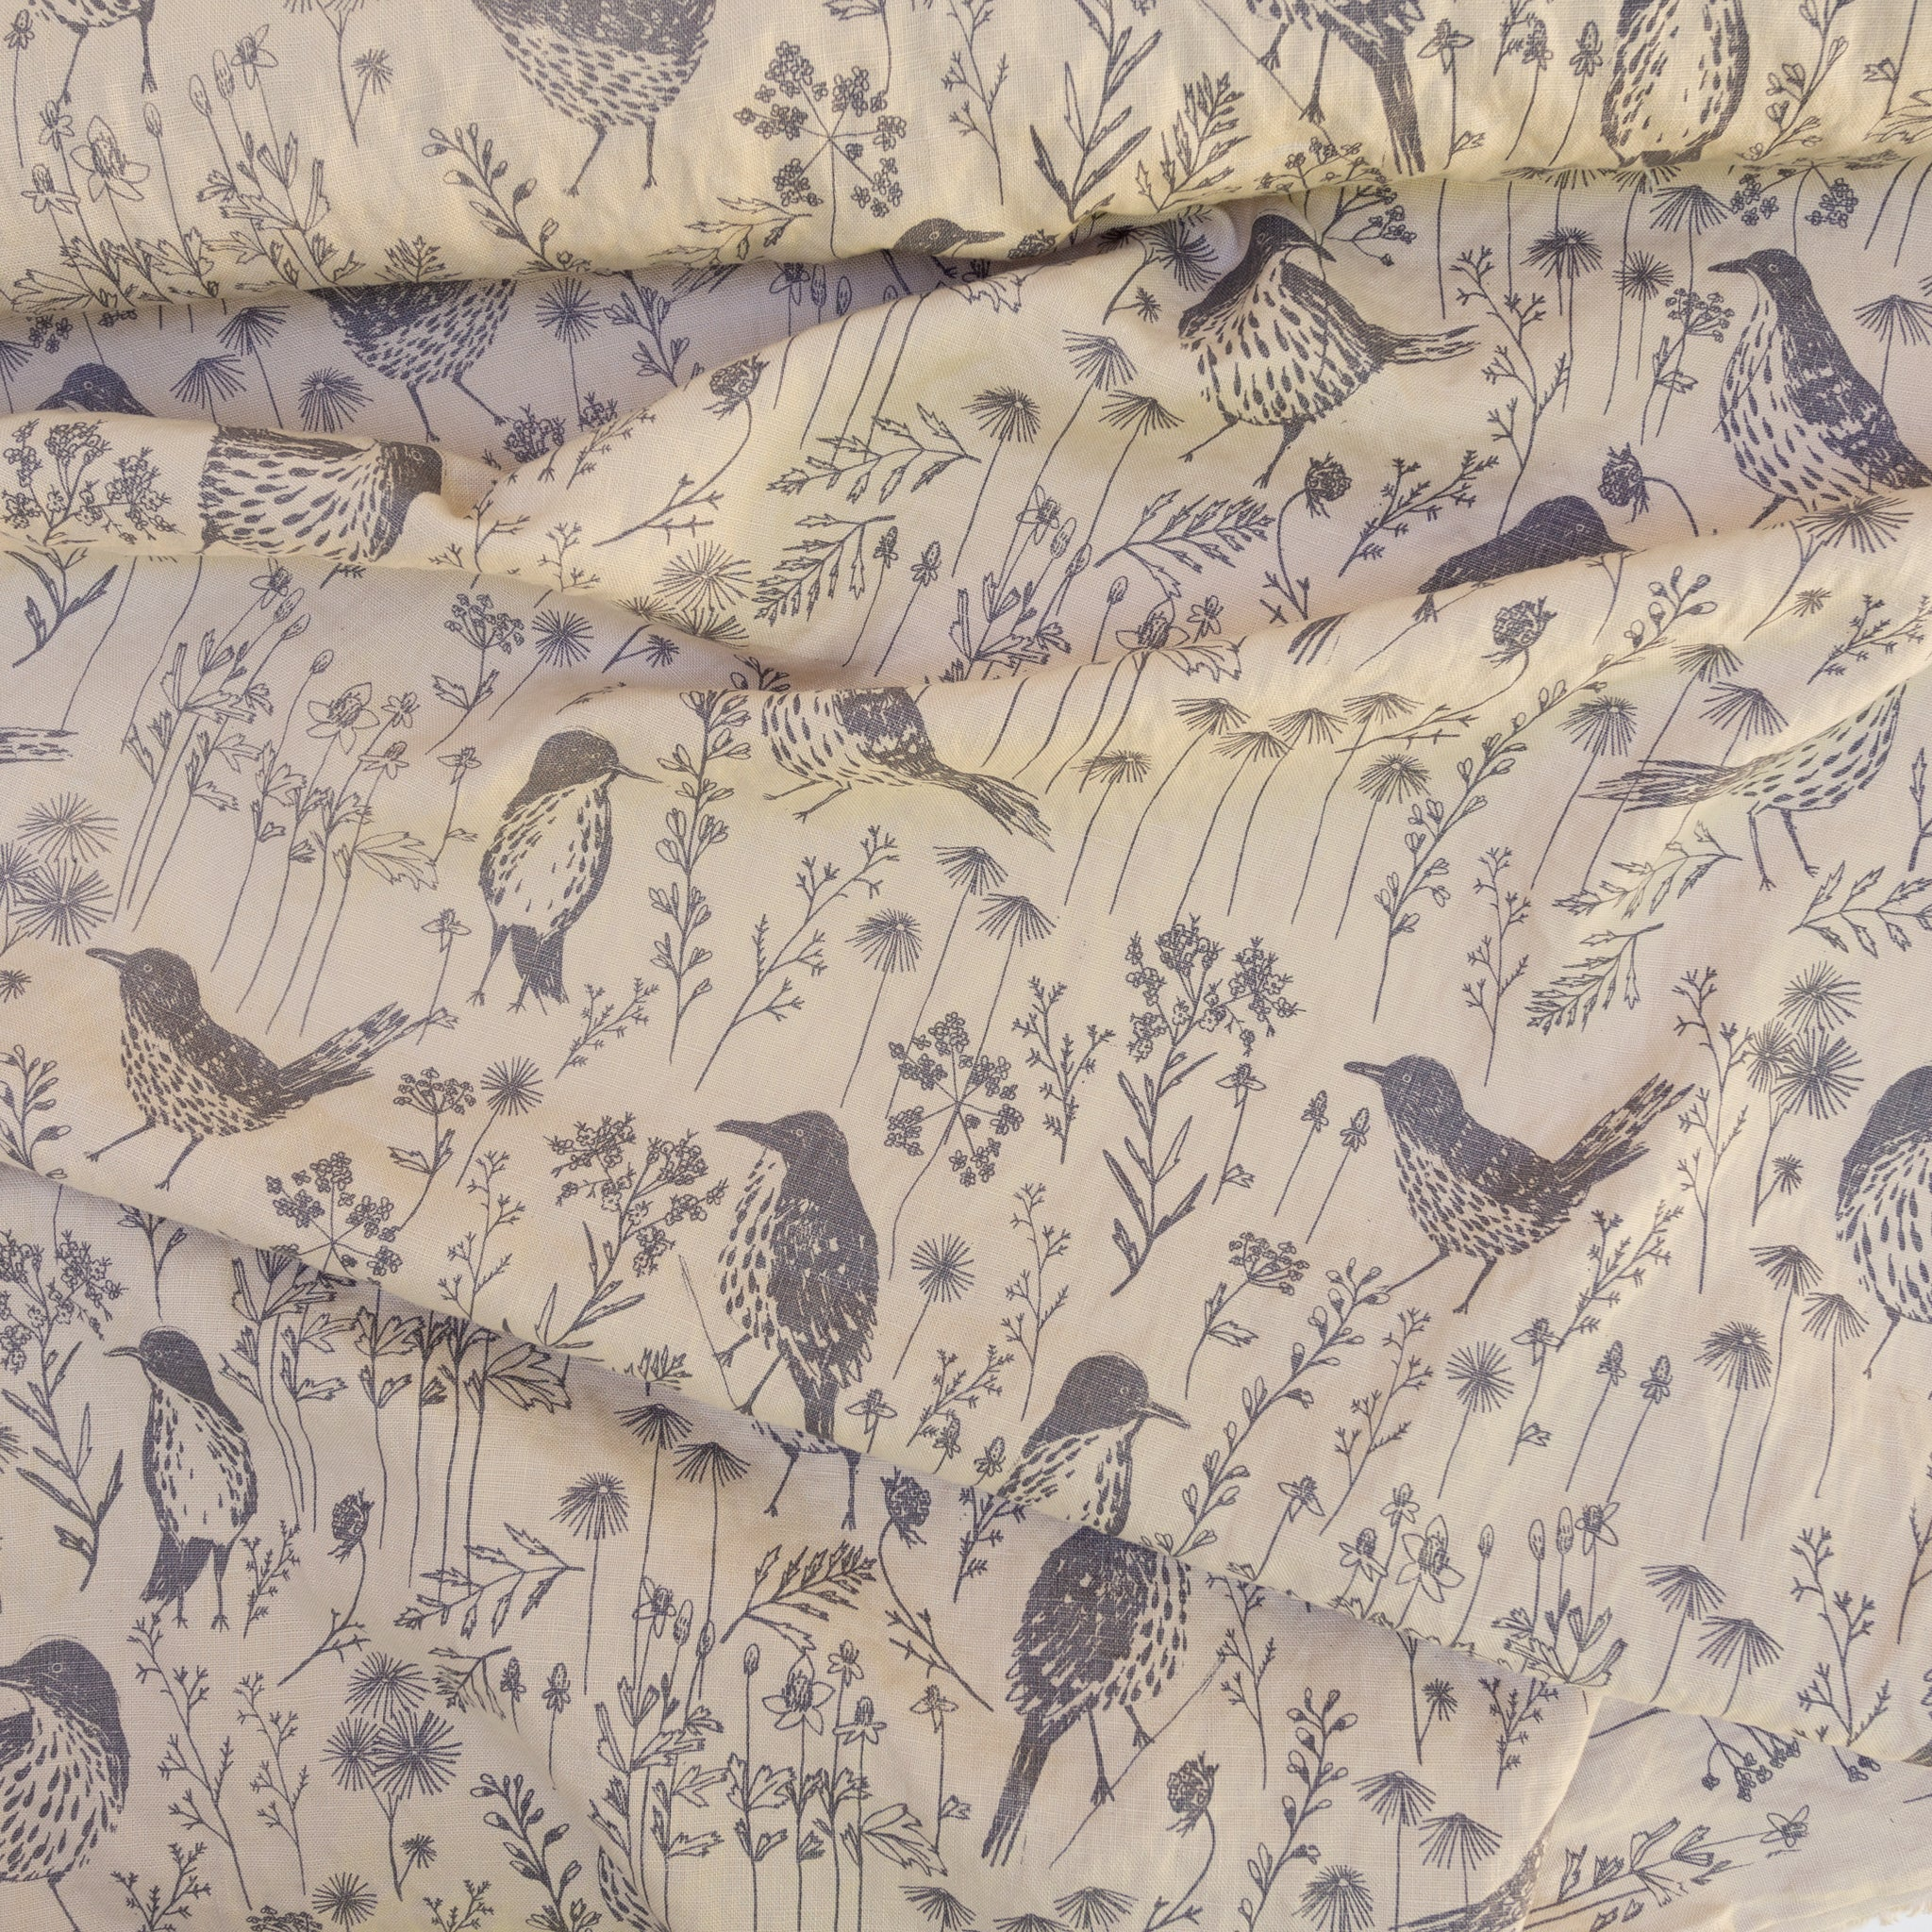 Screenprinted fabric yardage with brown thrashers